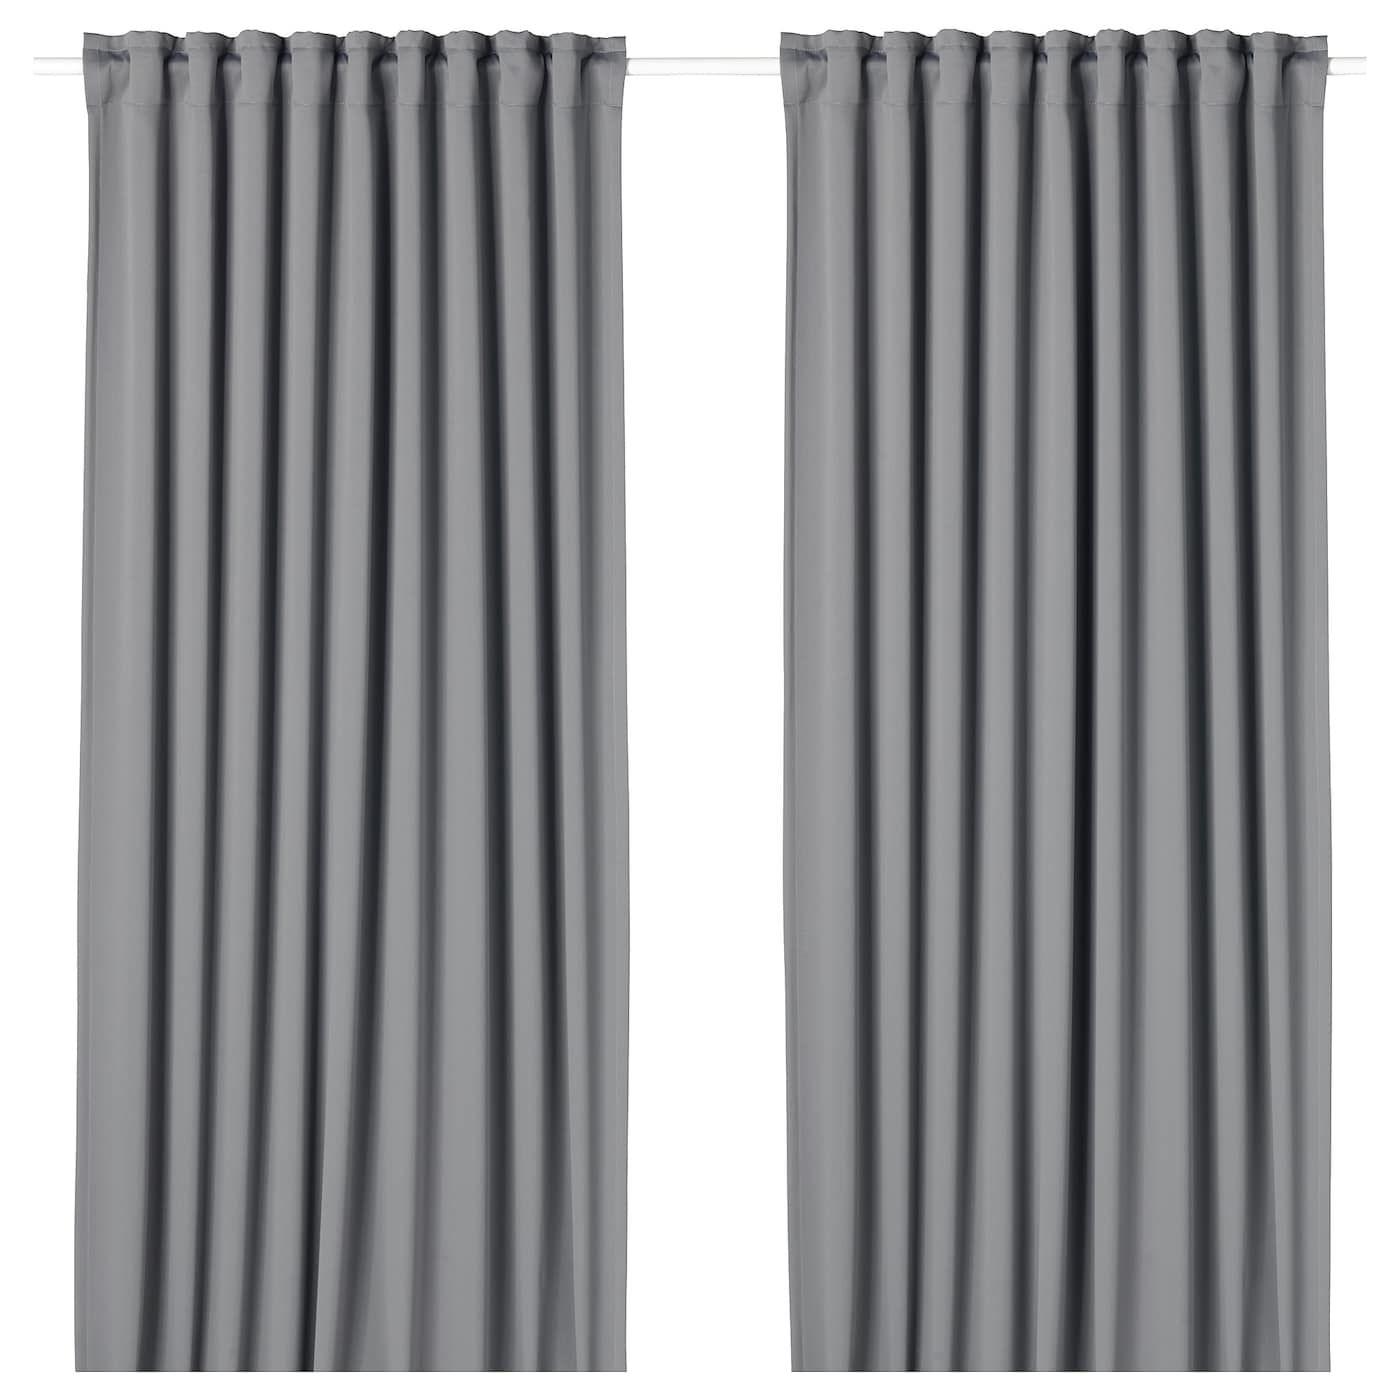 Majgull Blackout Curtains 1 Pair Gray 57x98 Block Out